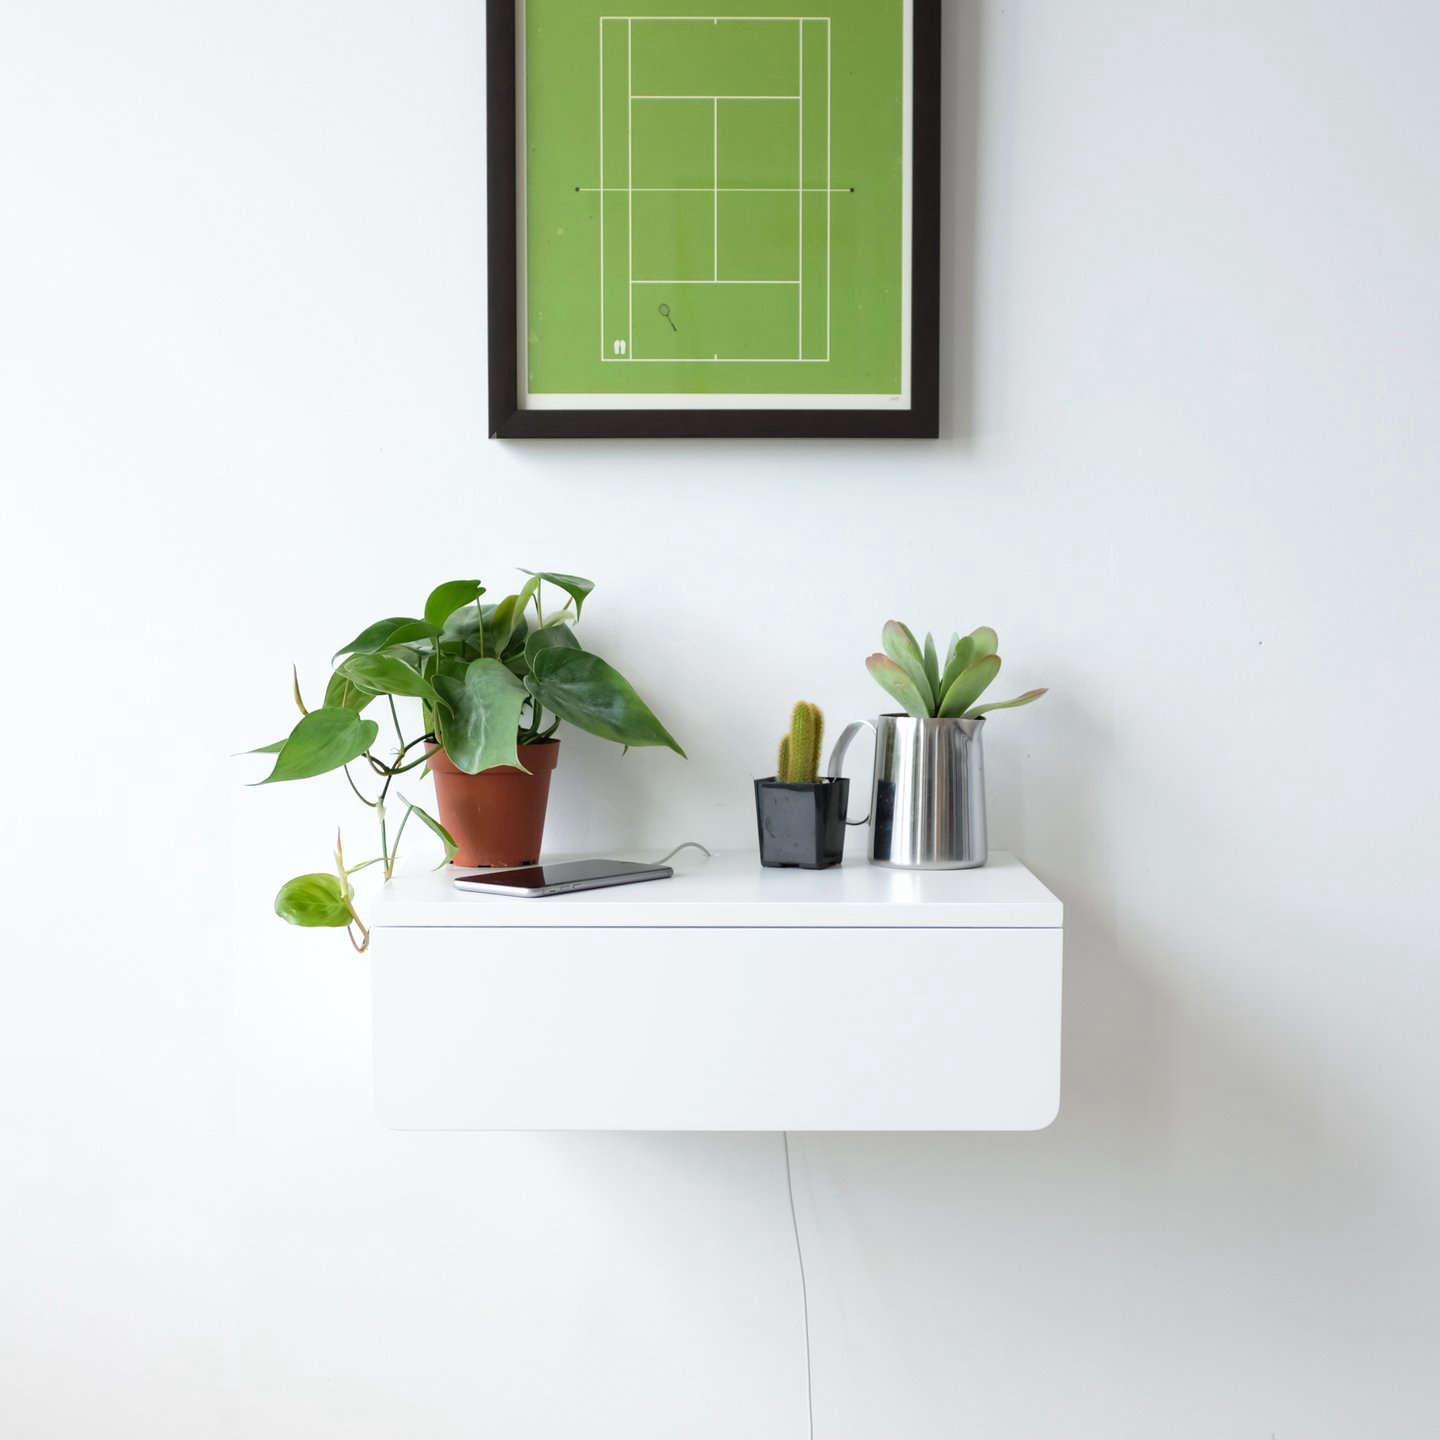 Magnificent Kroft Buoy Floating Nightstand Is Available Easy Bedside Shelves Drawers Remodelista Wall Mounted Nightstand Ideas Wall Mounted Nightstand Canada houzz-03 Wall Mounted Nightstand